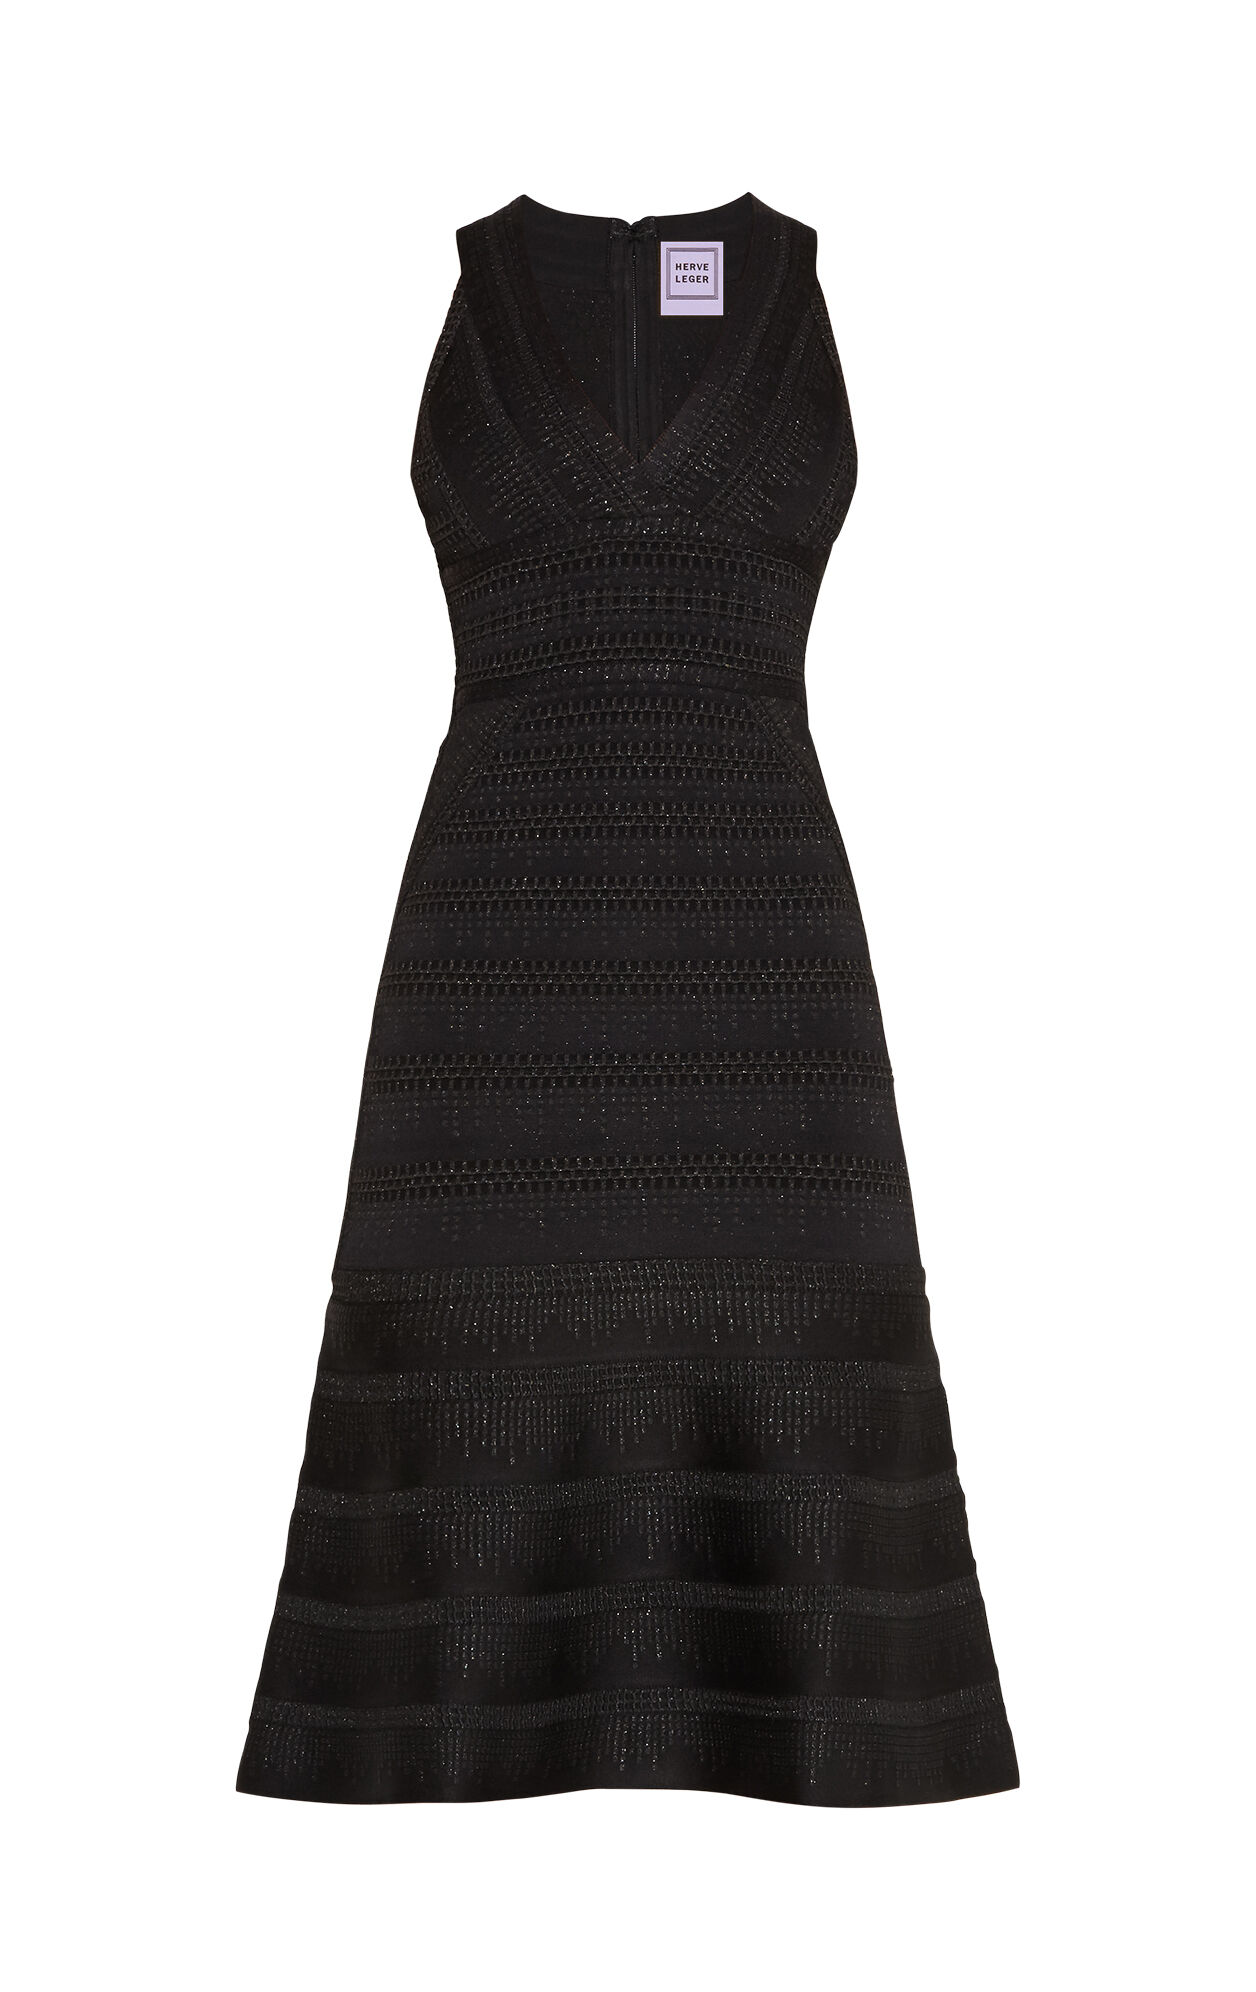 Theron Metallic Crochet Flute Dress